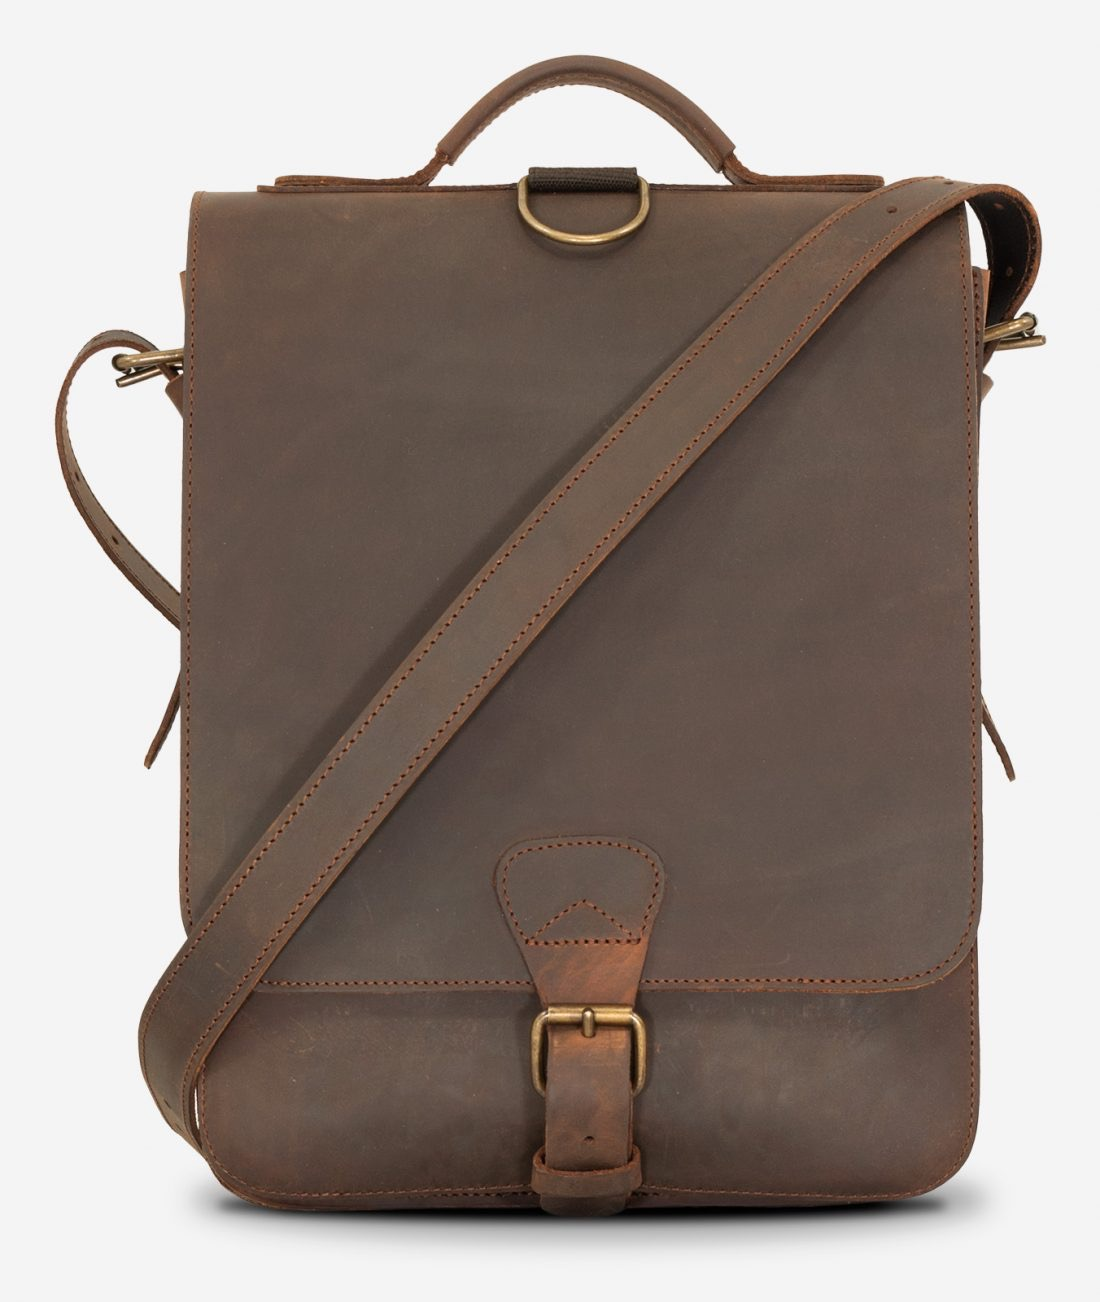 Front view of the vegetable-tanned brown leather backpack with shoulder belt.